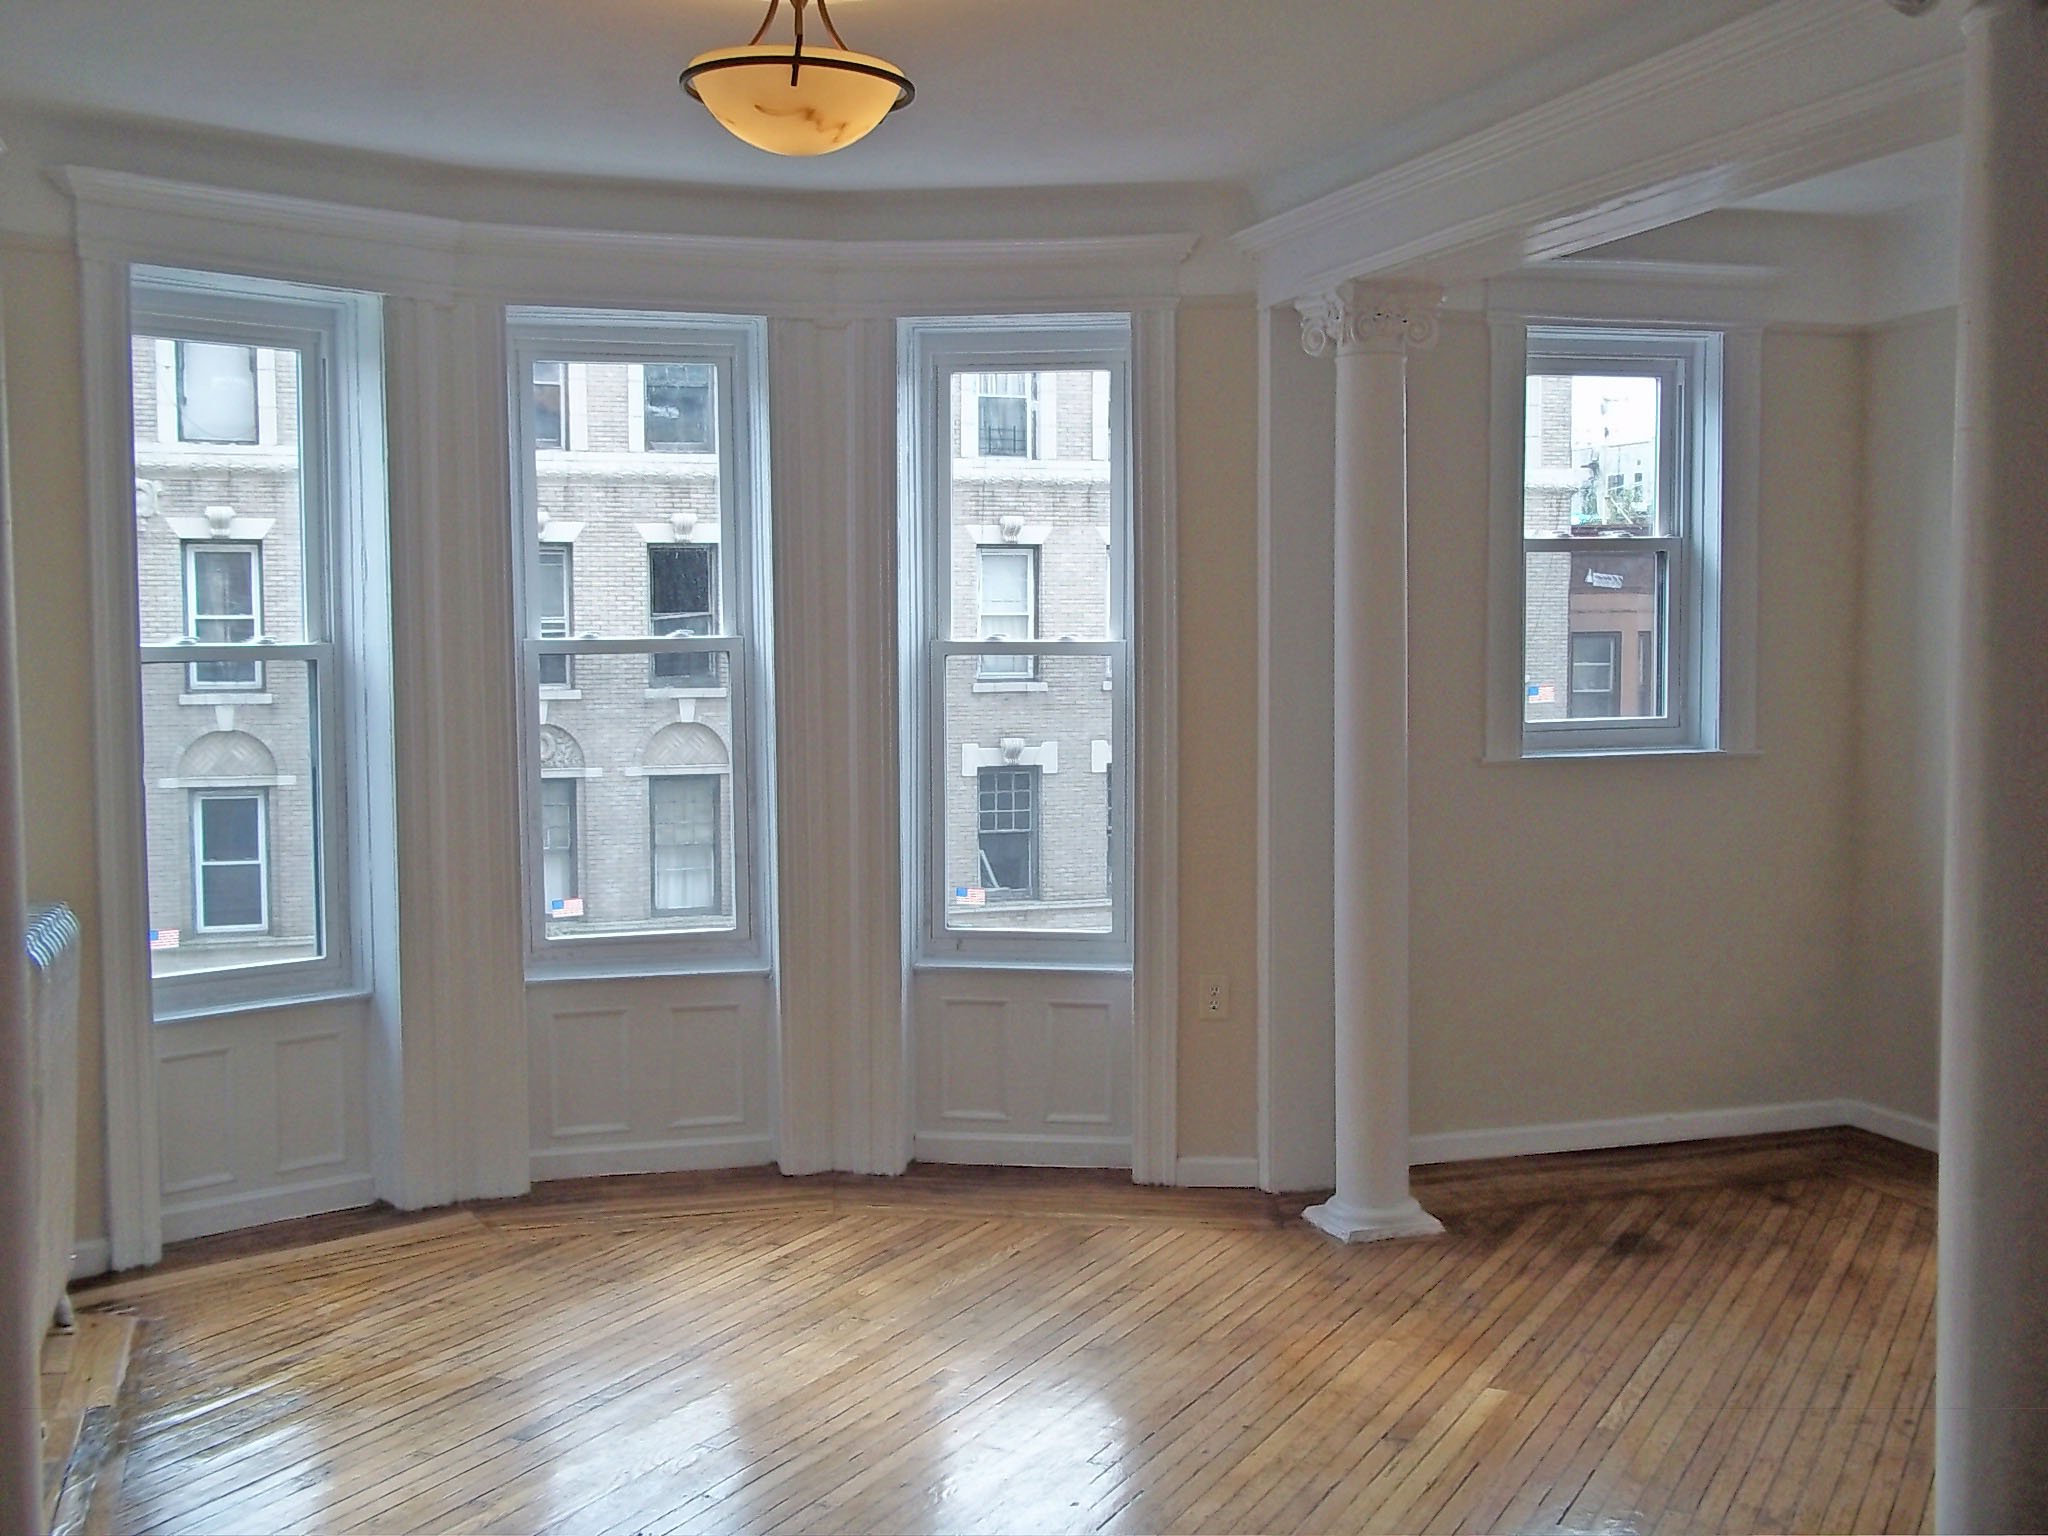 Crown heights 3 bedroom apartment for rent brooklyn crg3102 for 3 bathroom apartments